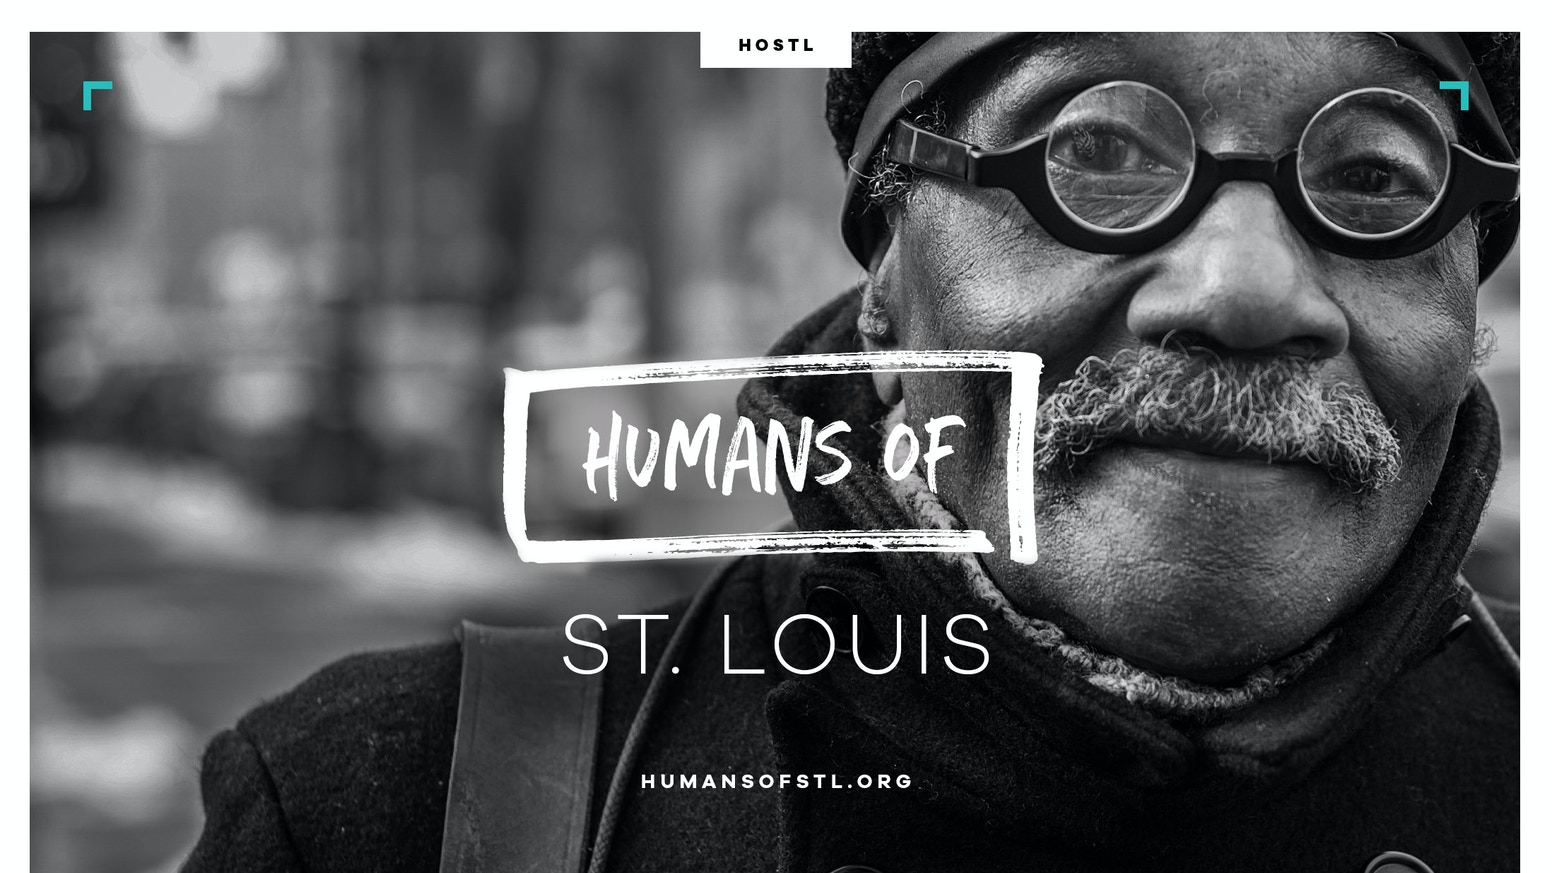 Humans of St. Louis is self-publishing a curated hardcover book of first-person portraits and stories about St. Louisans.